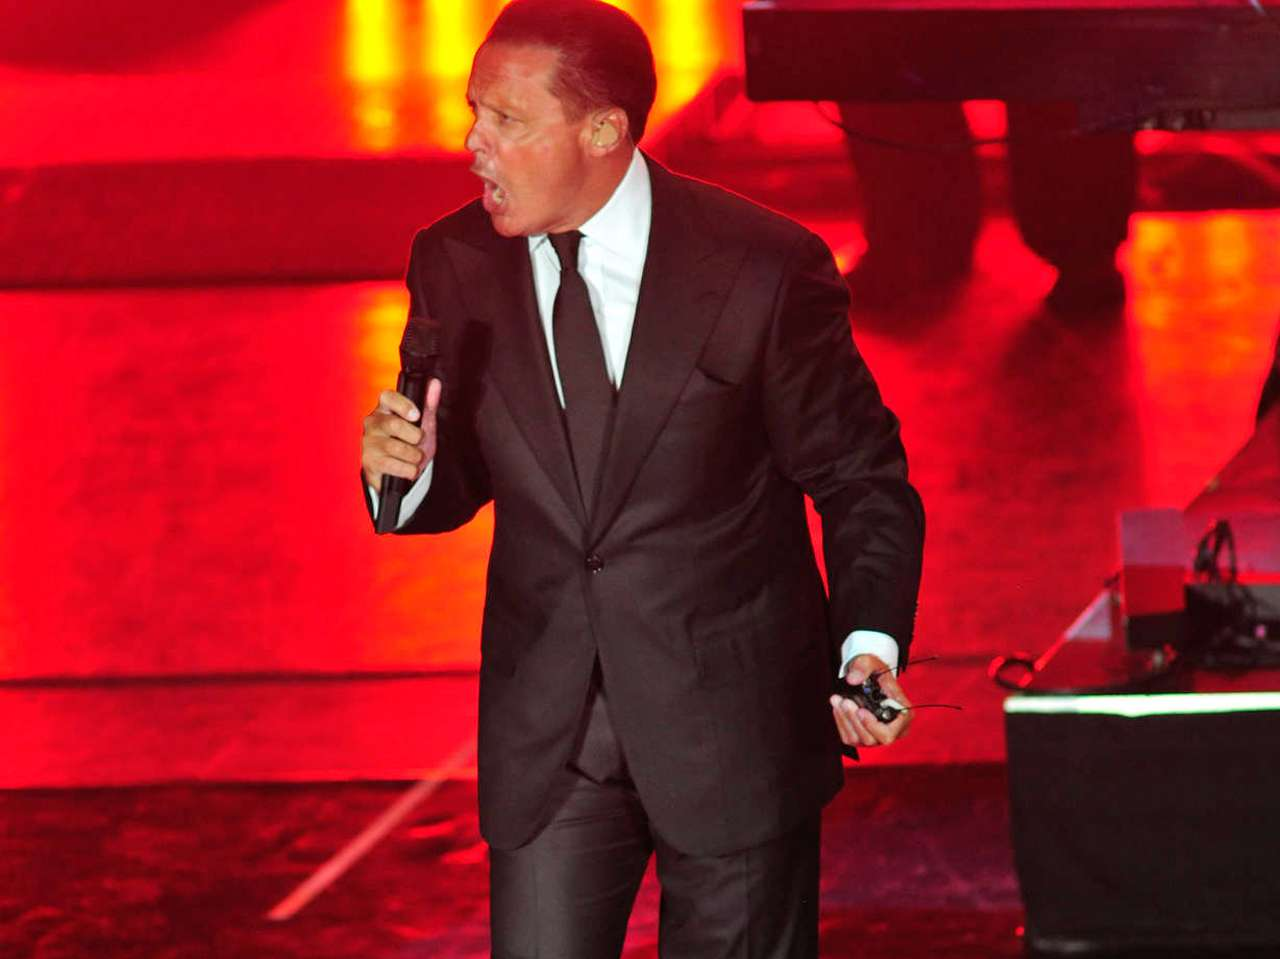 Luis Miguel teme al fracaso. Foto: Photo AMC